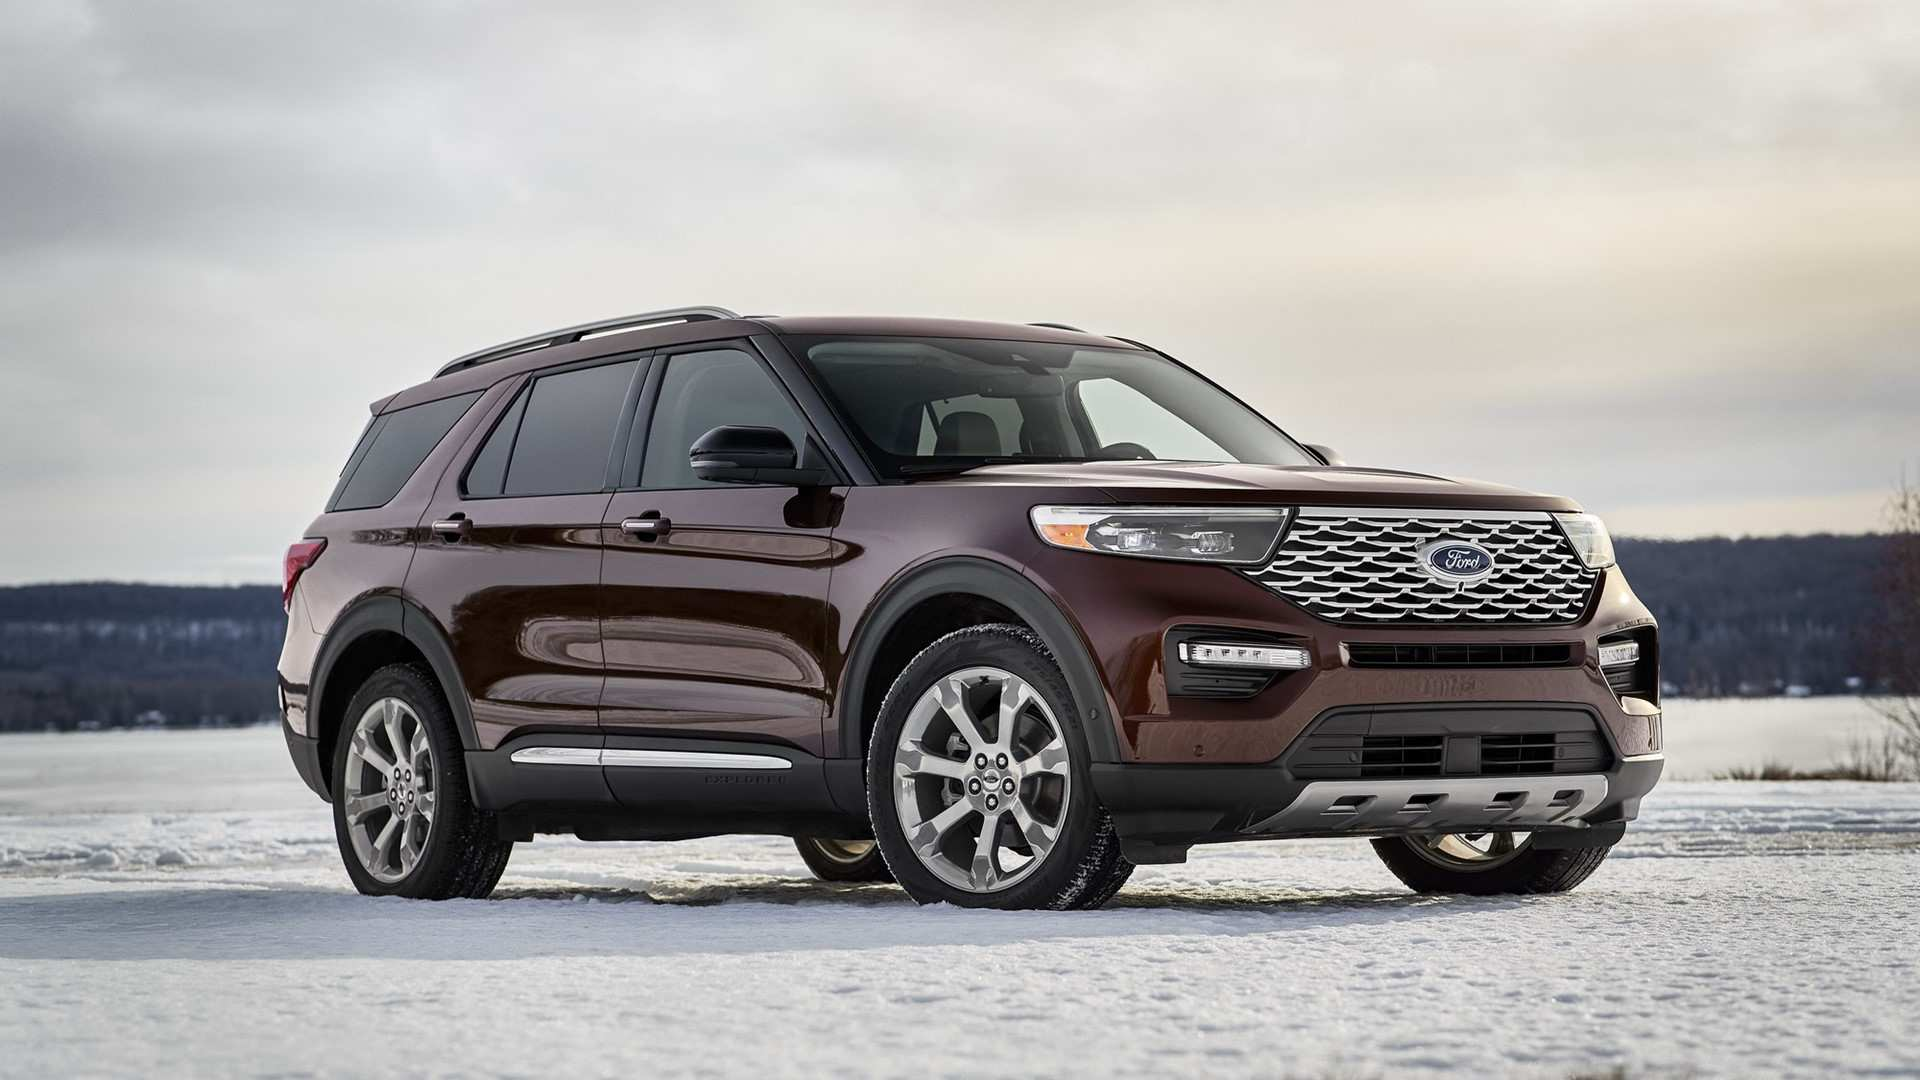 55 All New Ford Suv 2020 Specs